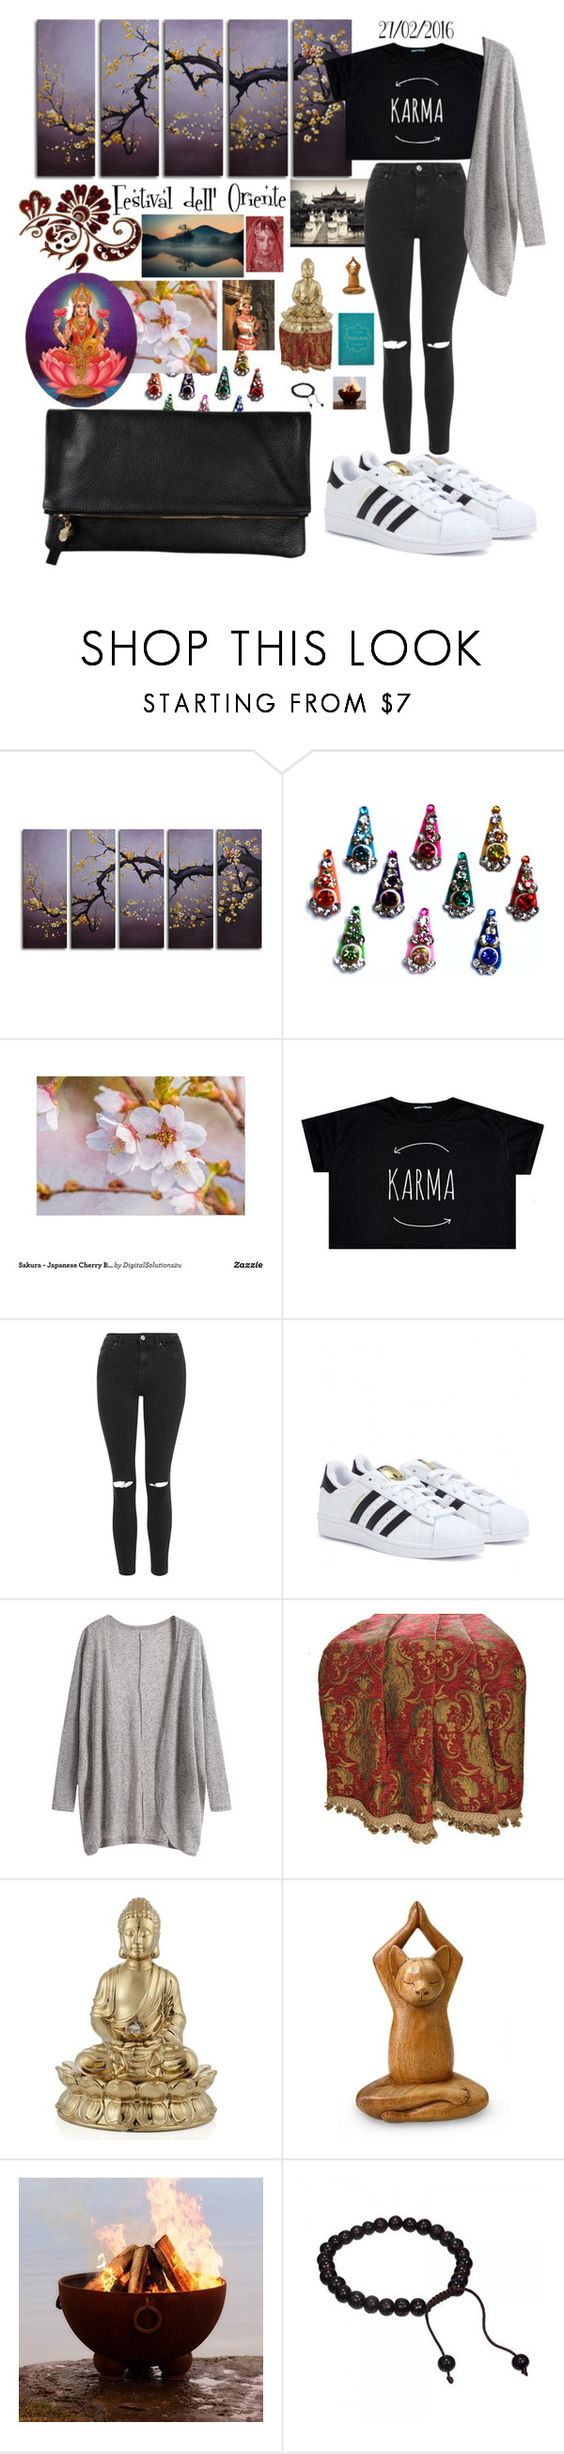 """East"" by nenupha ❤ liked on Polyvore featuring Topshop, adidas, Clare V., red flower, CO, Sherry Kline, Fountain and NOVICA"